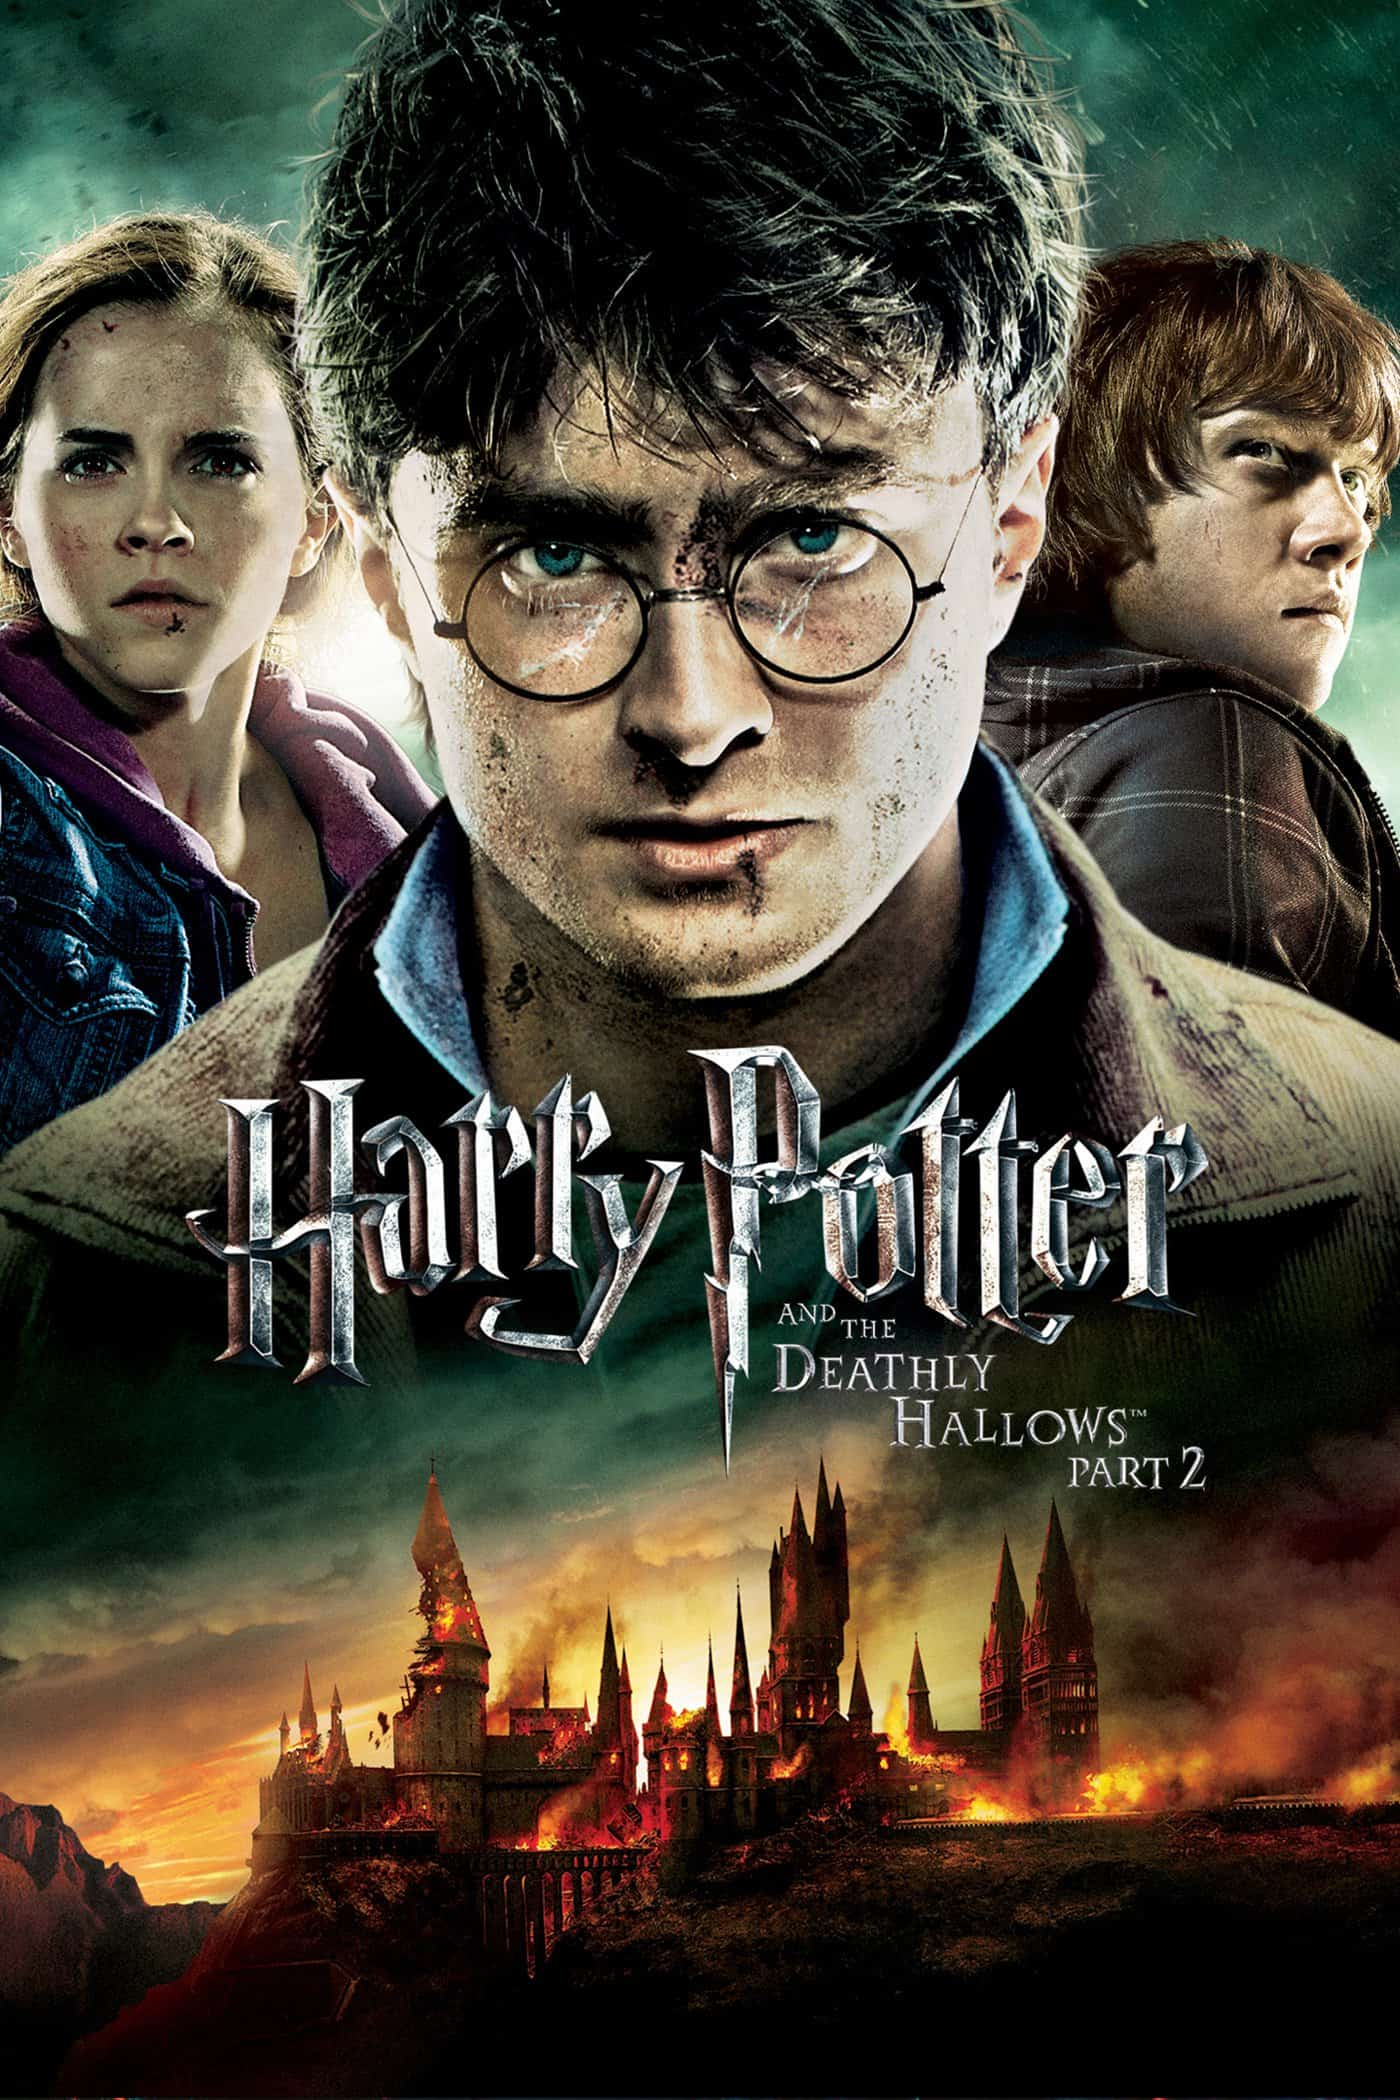 Harry Potter and the Deathly Hallows - Part 2, 2011